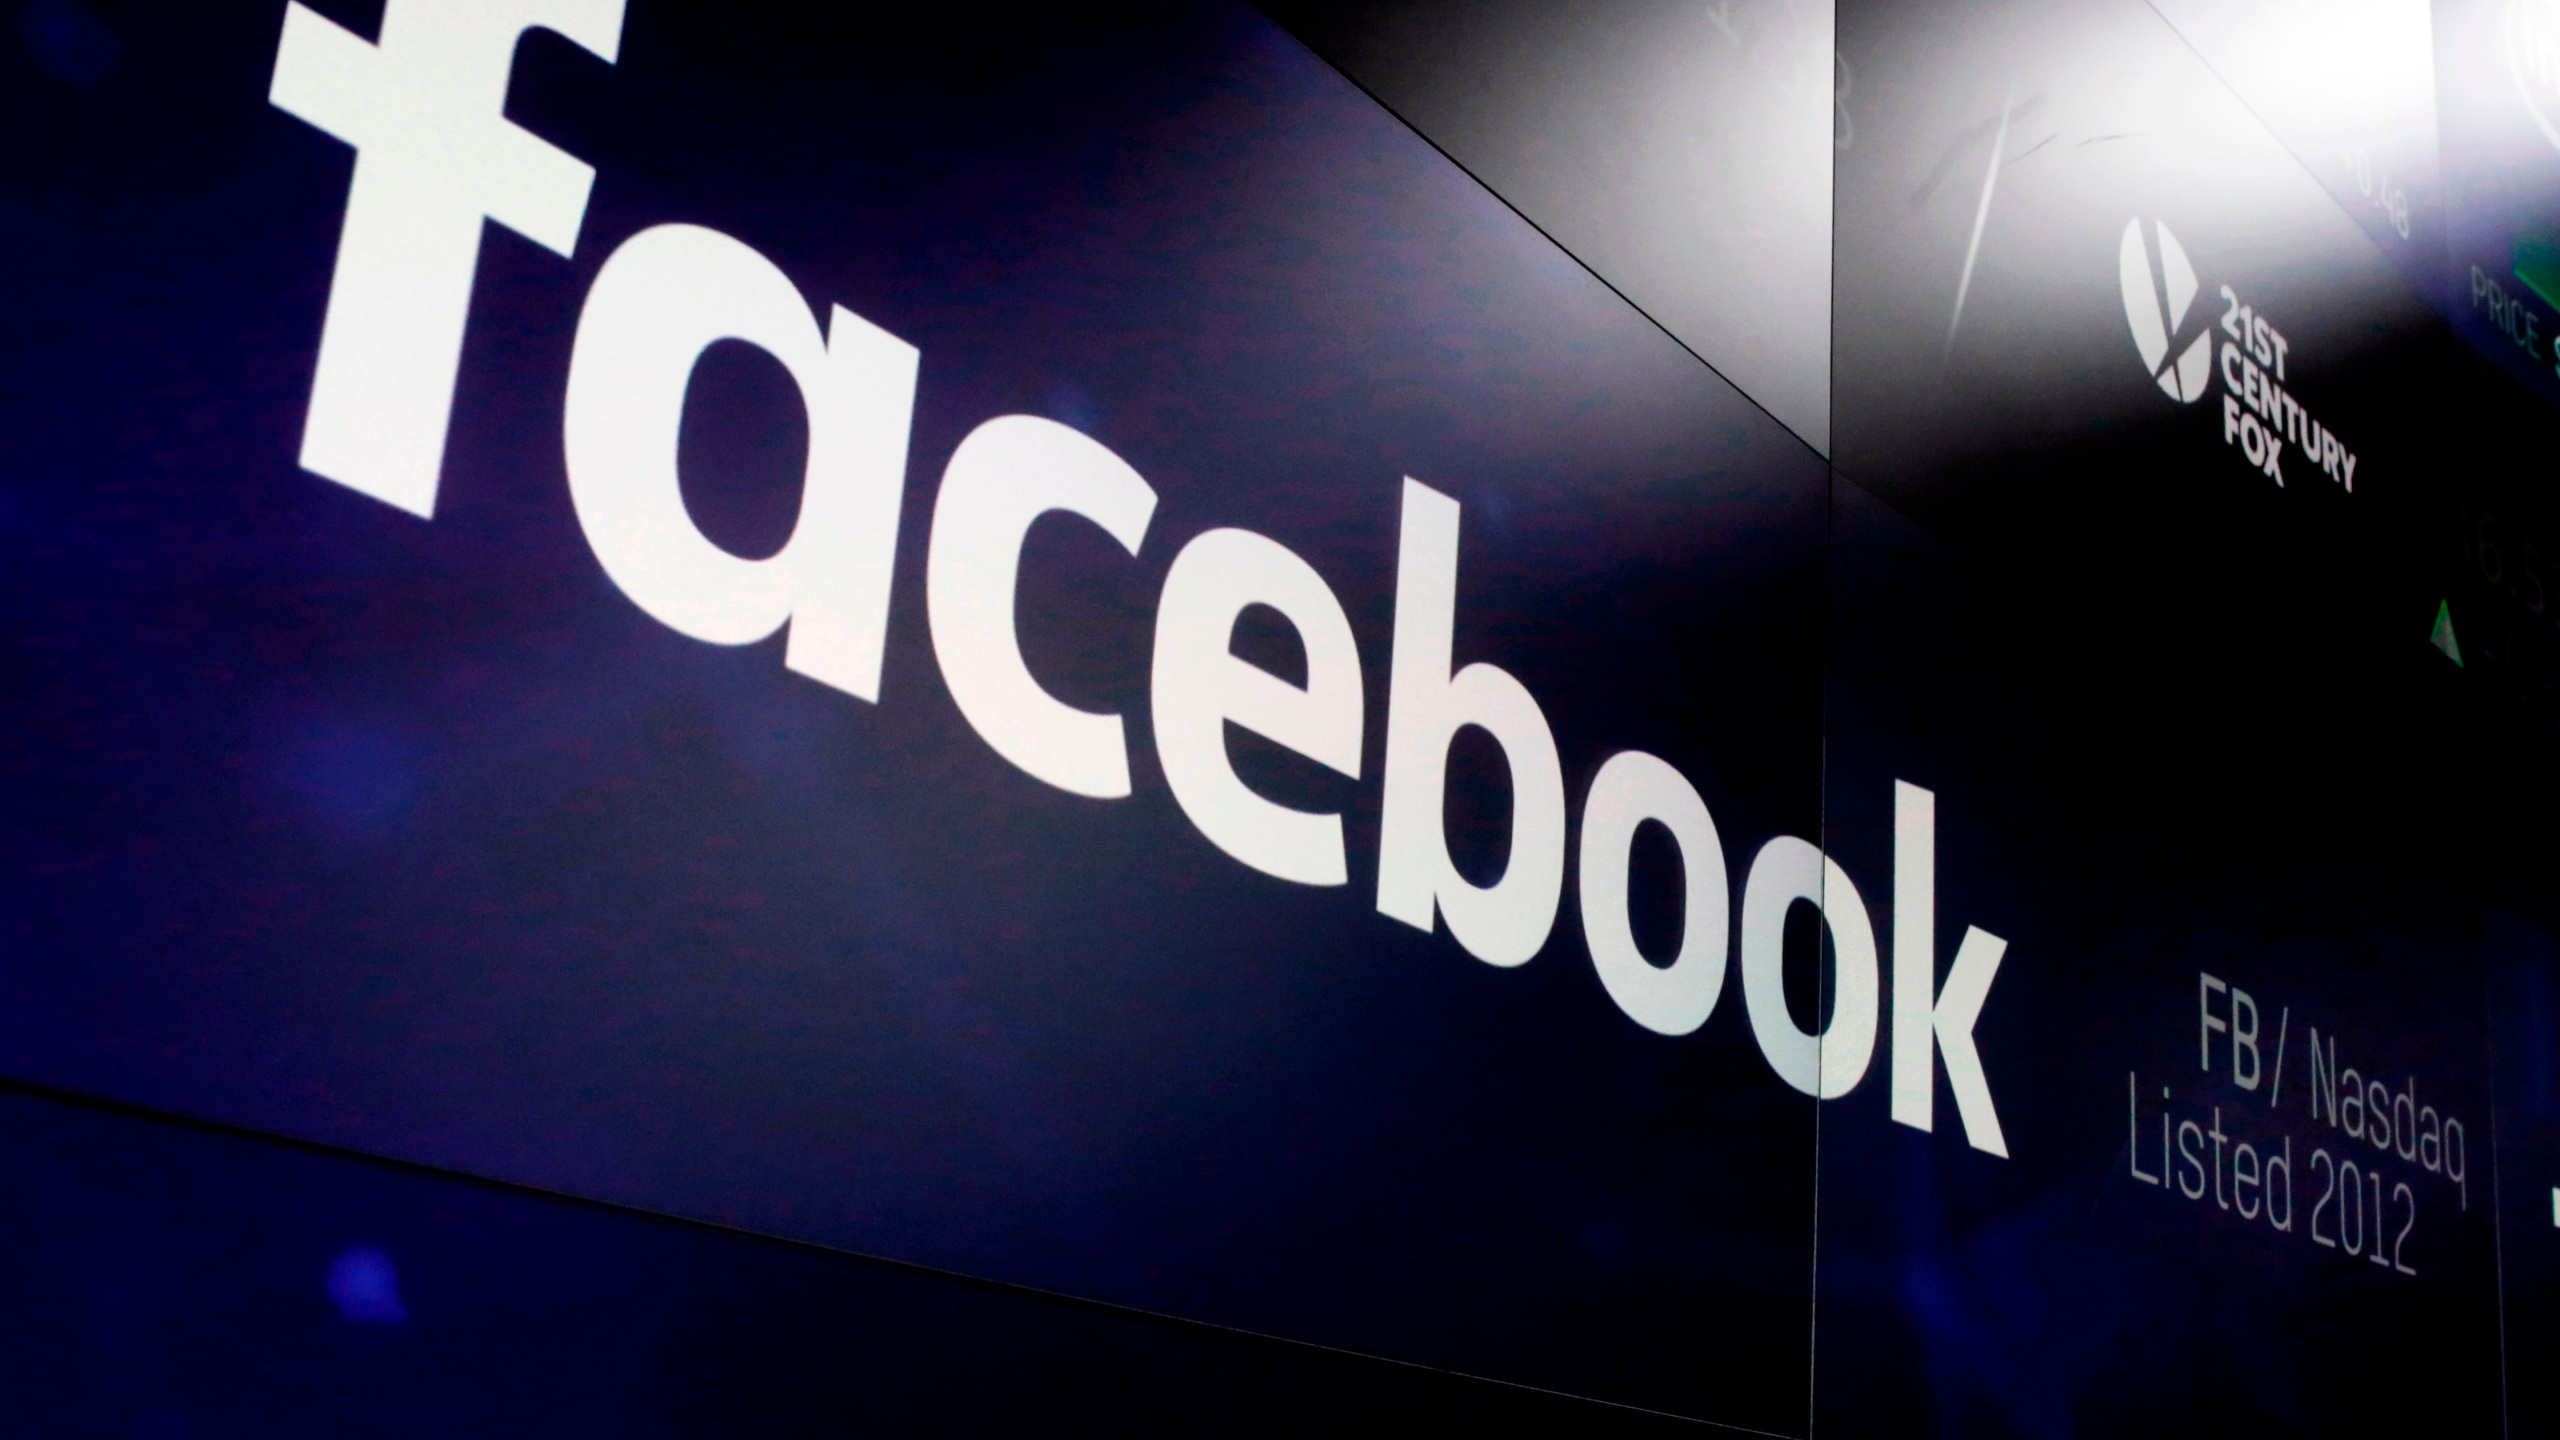 US plans for fake social media run afoul of Facebook rules